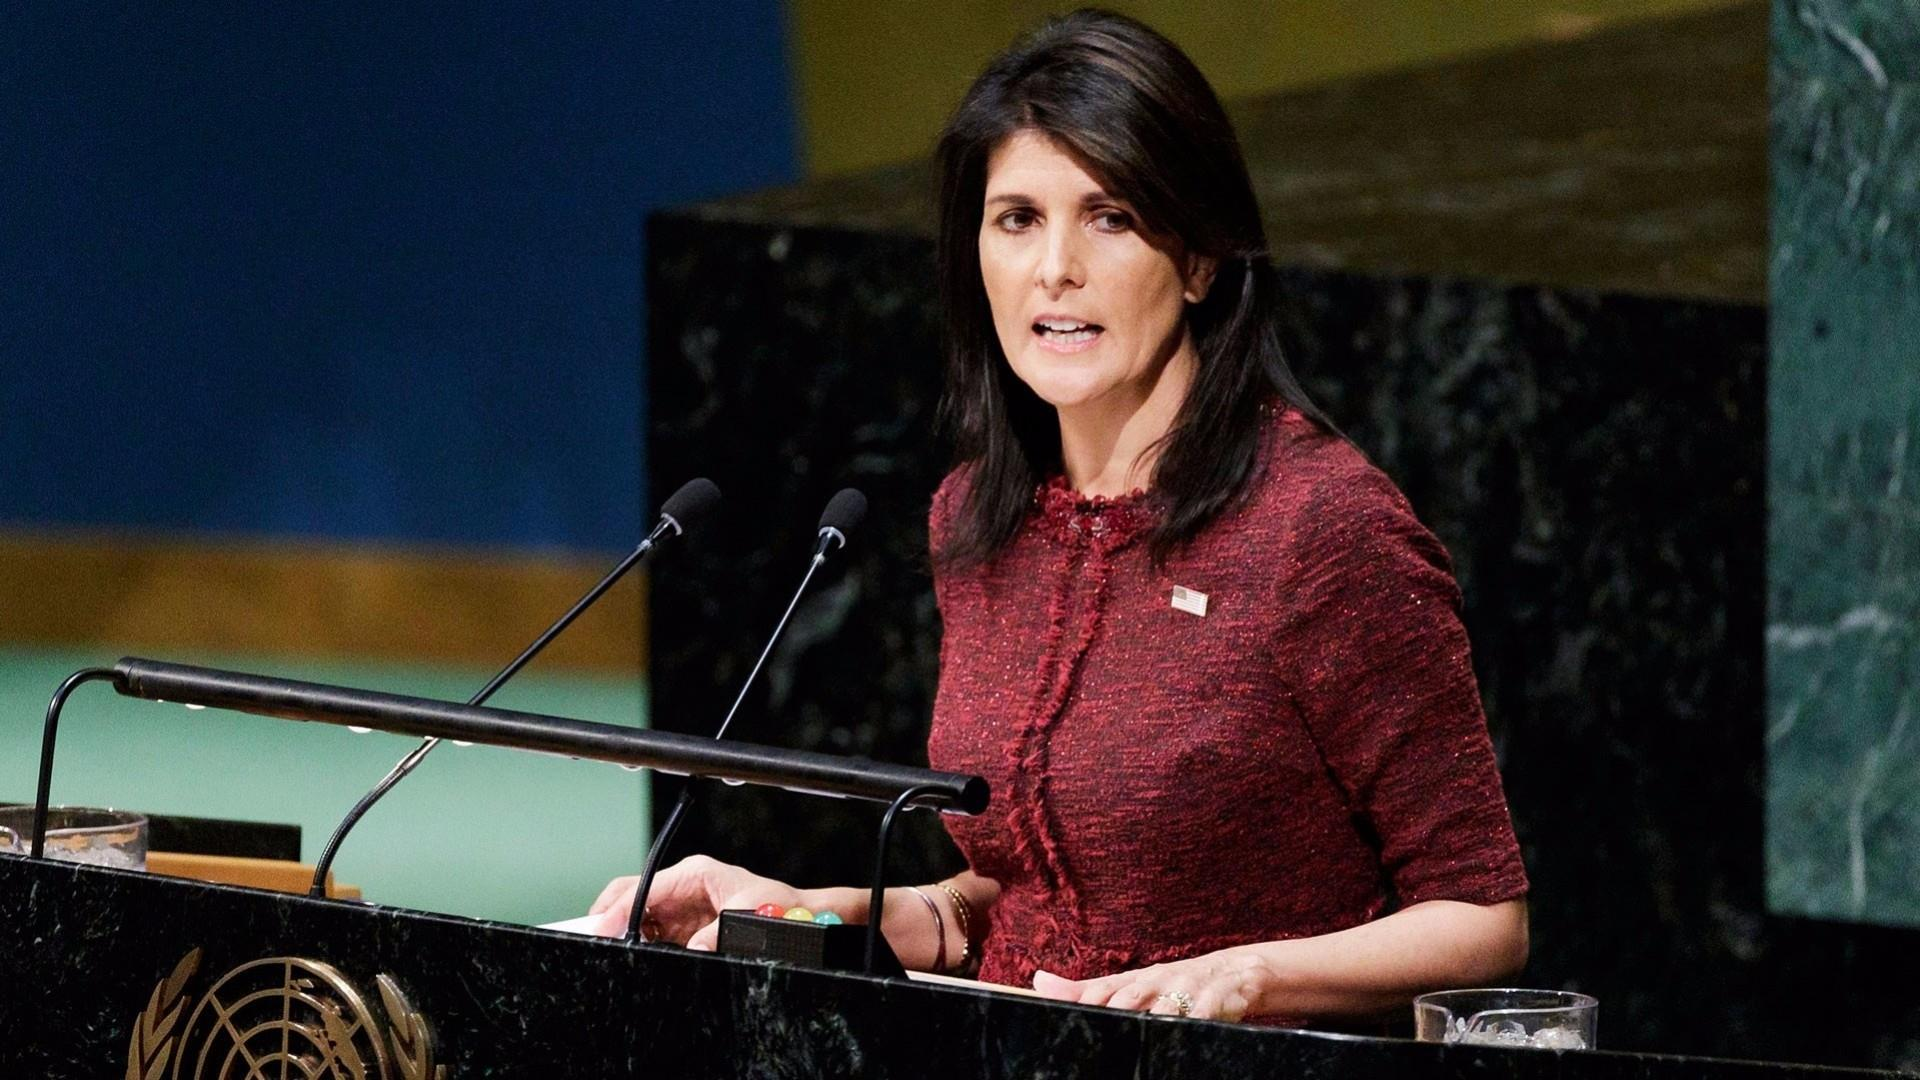 UN Ambassador Nikki Haley has told staff she plans to resign